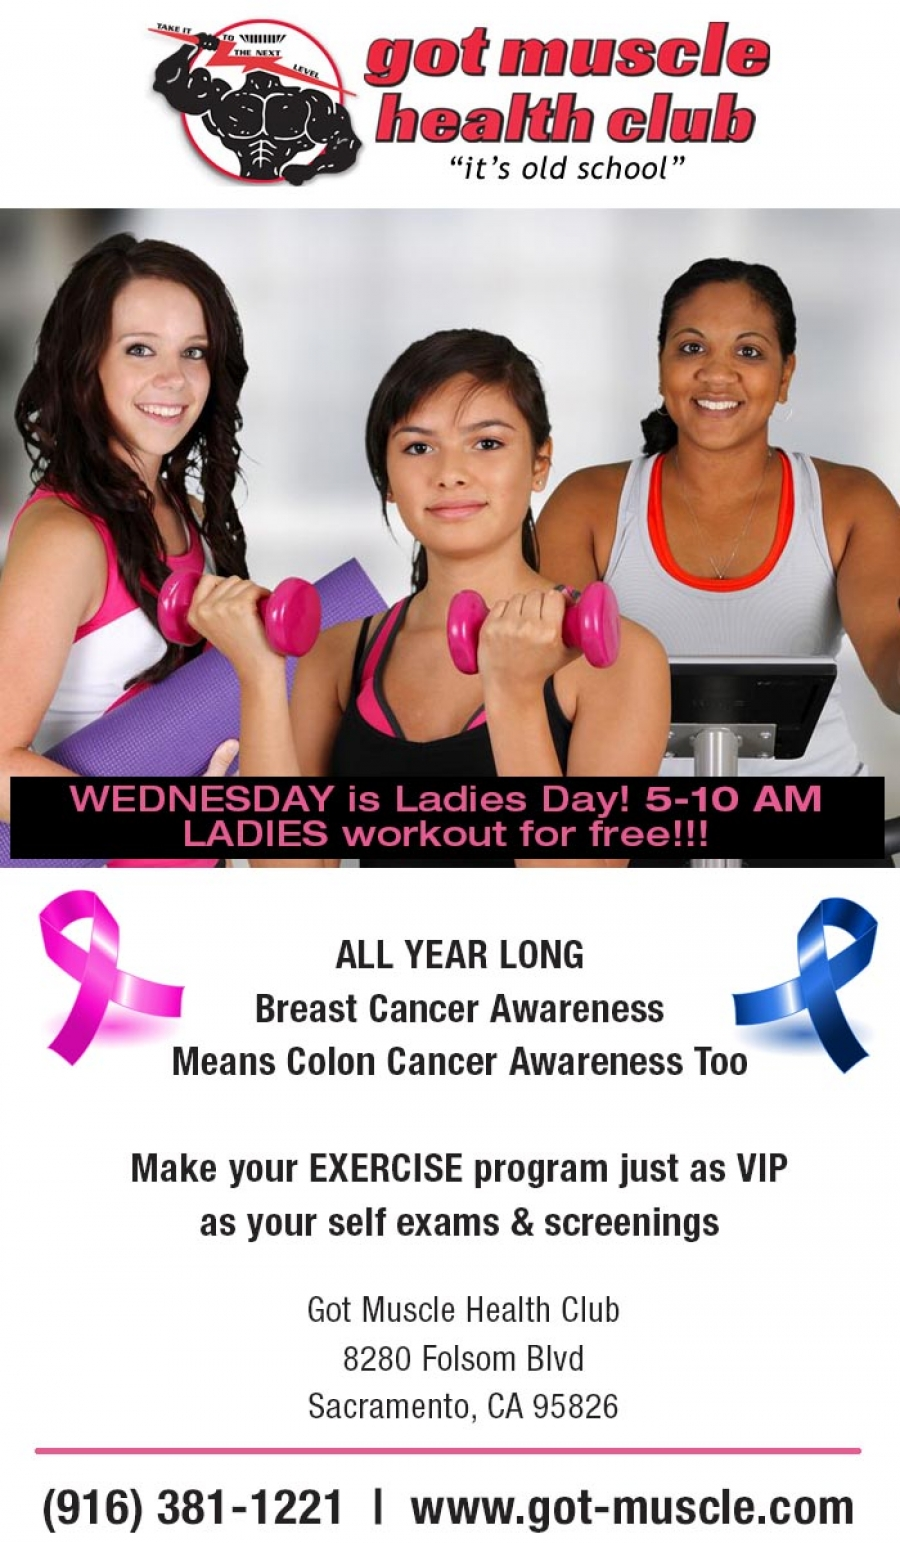 Wednesday is Ladies Day at Got Muscle Health Club in Sacramento